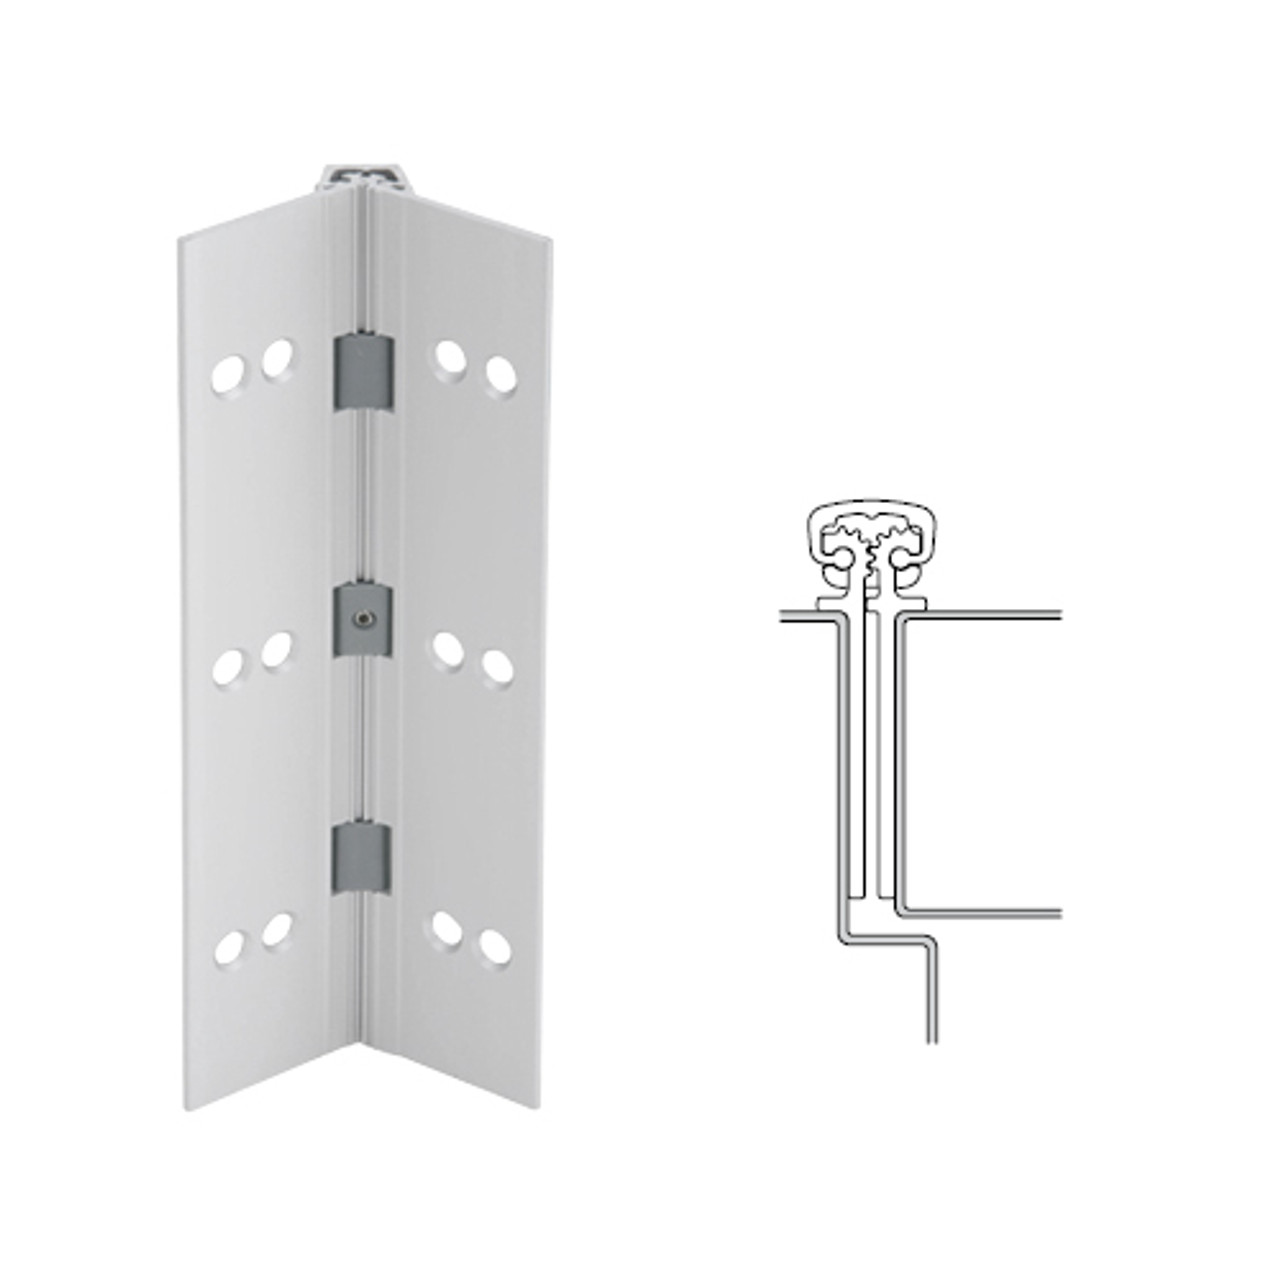 027XY-US28-95-TFWD IVES Full Mortise Continuous Geared Hinges with Thread Forming Screws in Satin Aluminum